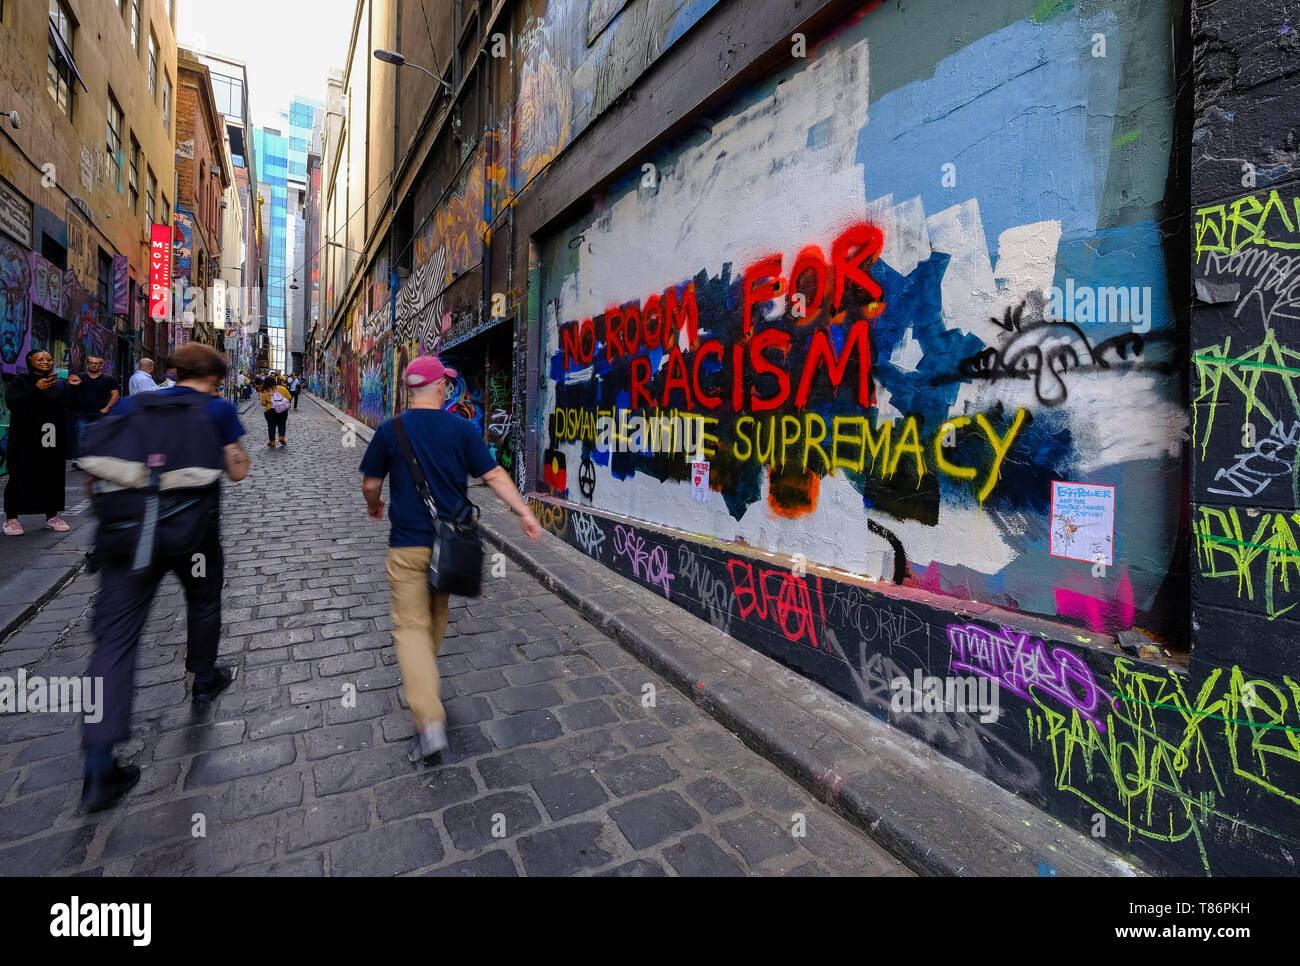 The mural honouring 'Egg Boy' Will Connolly who smashed an egg on Fraser Anning's head was painted over with an anti-racism message a few days later. - Stock Image